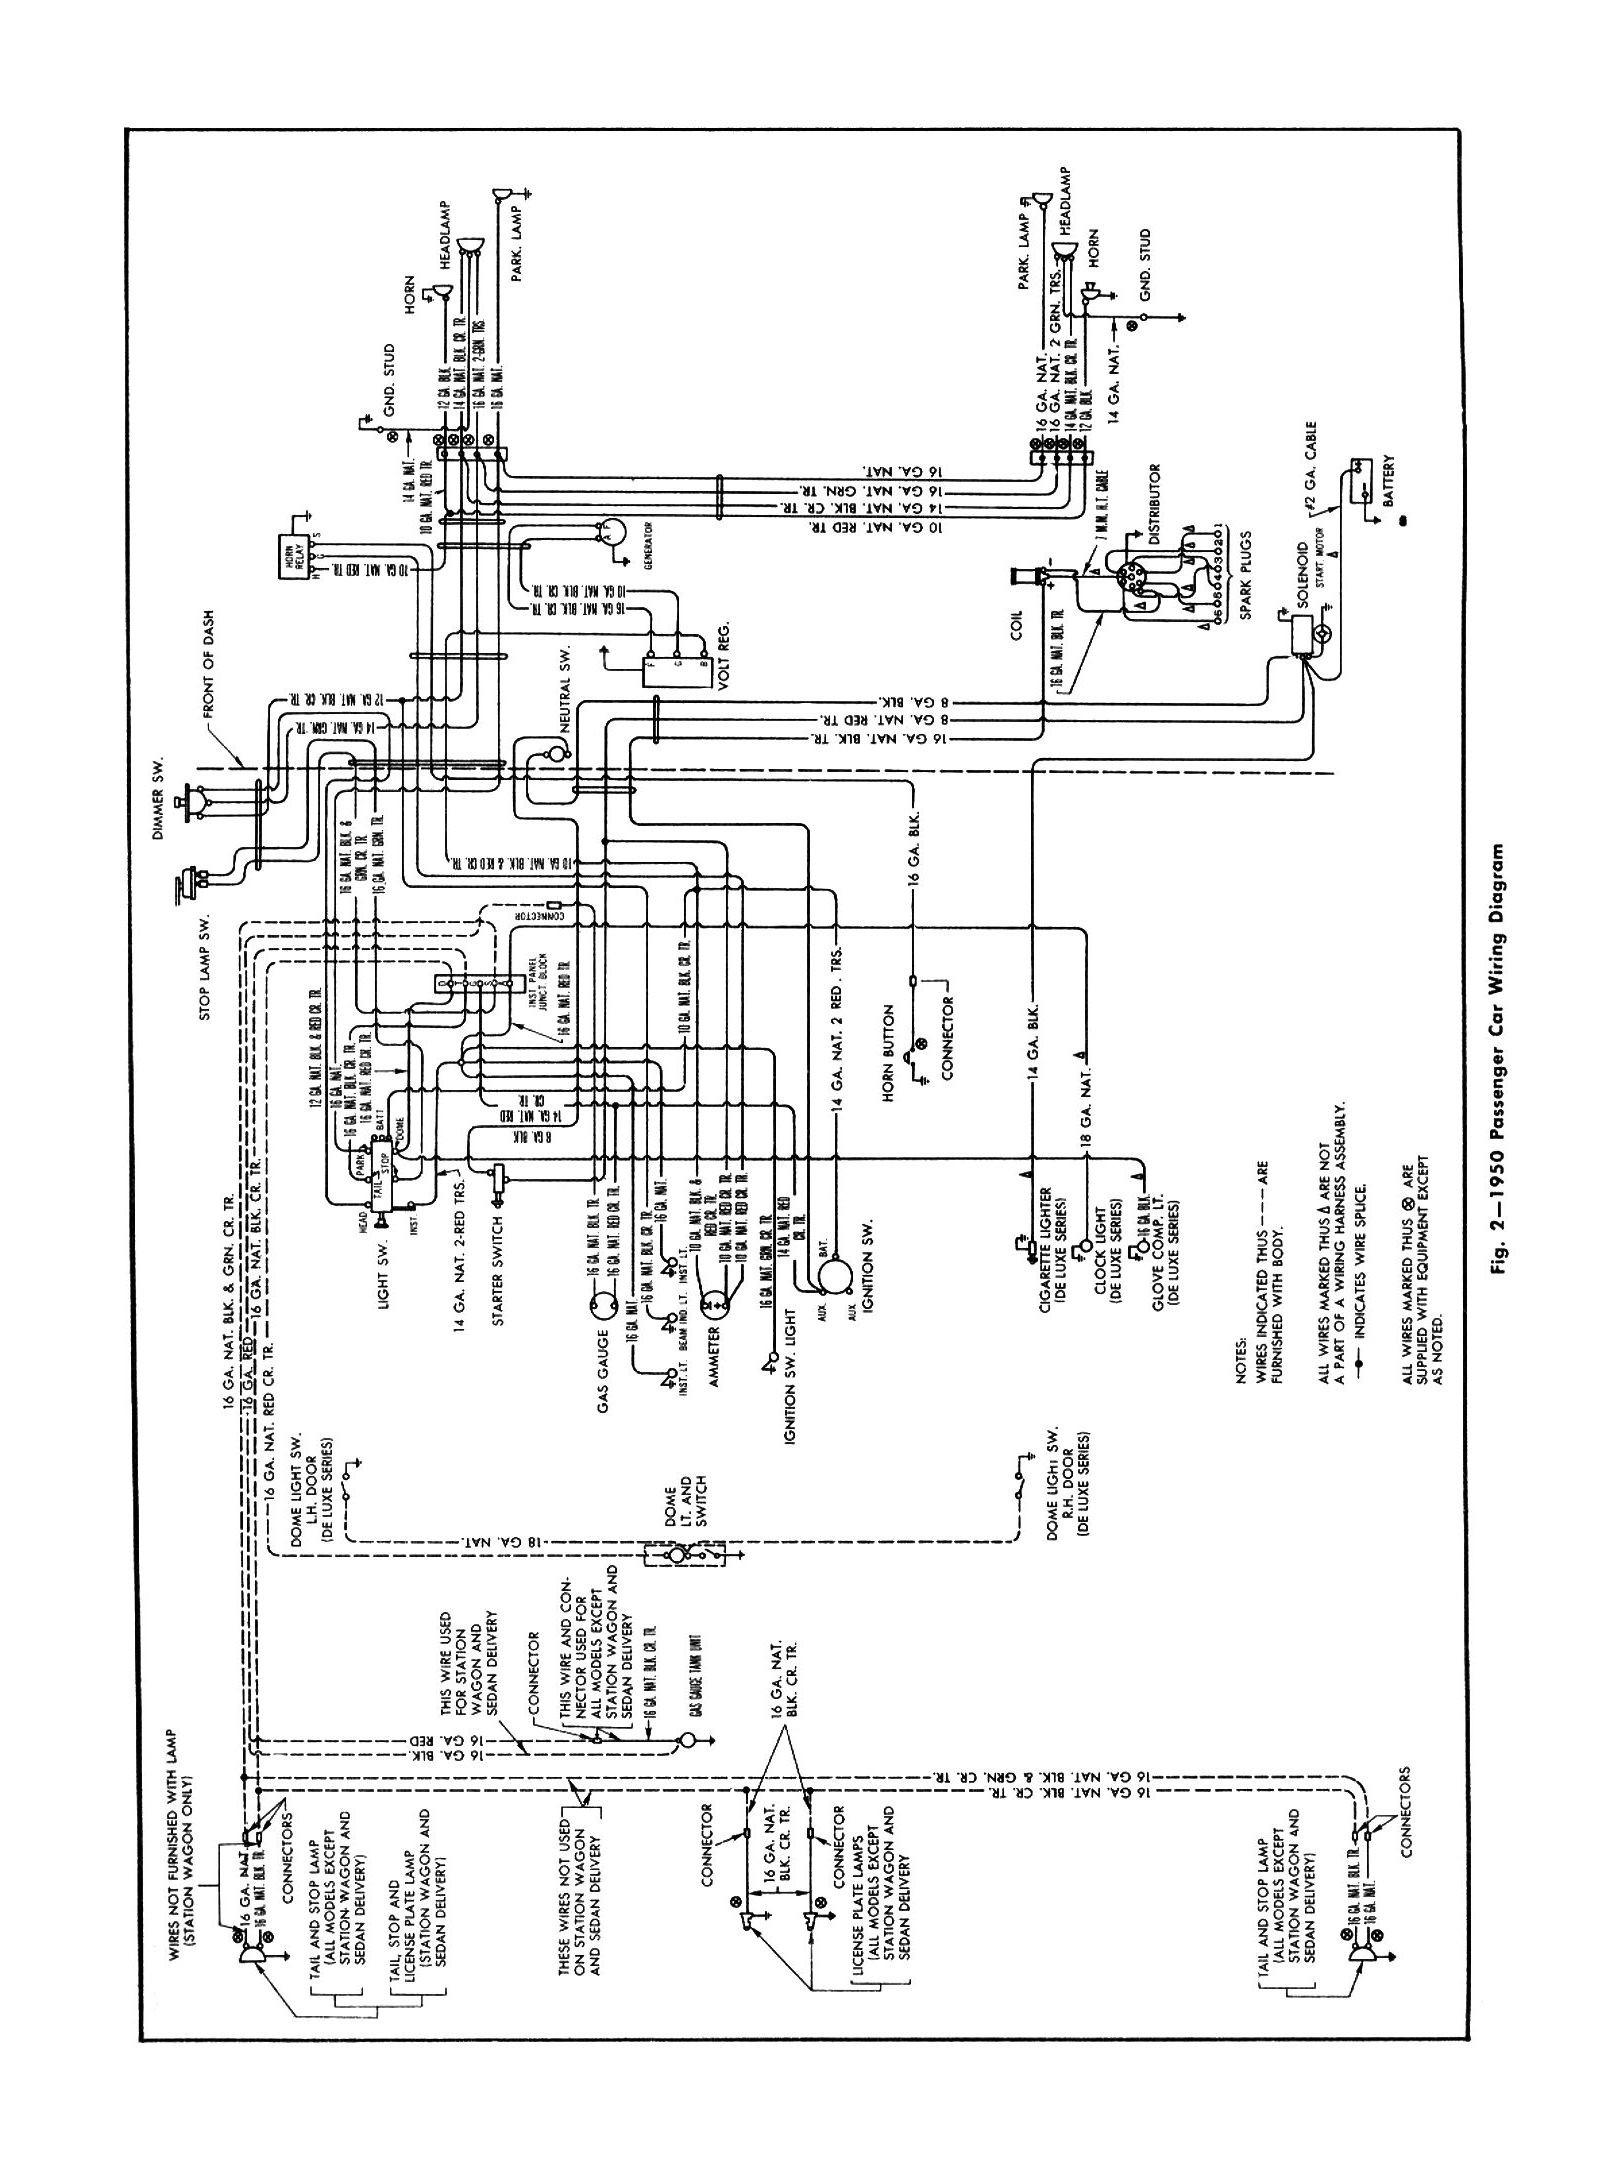 1950 hudson wiring diagram